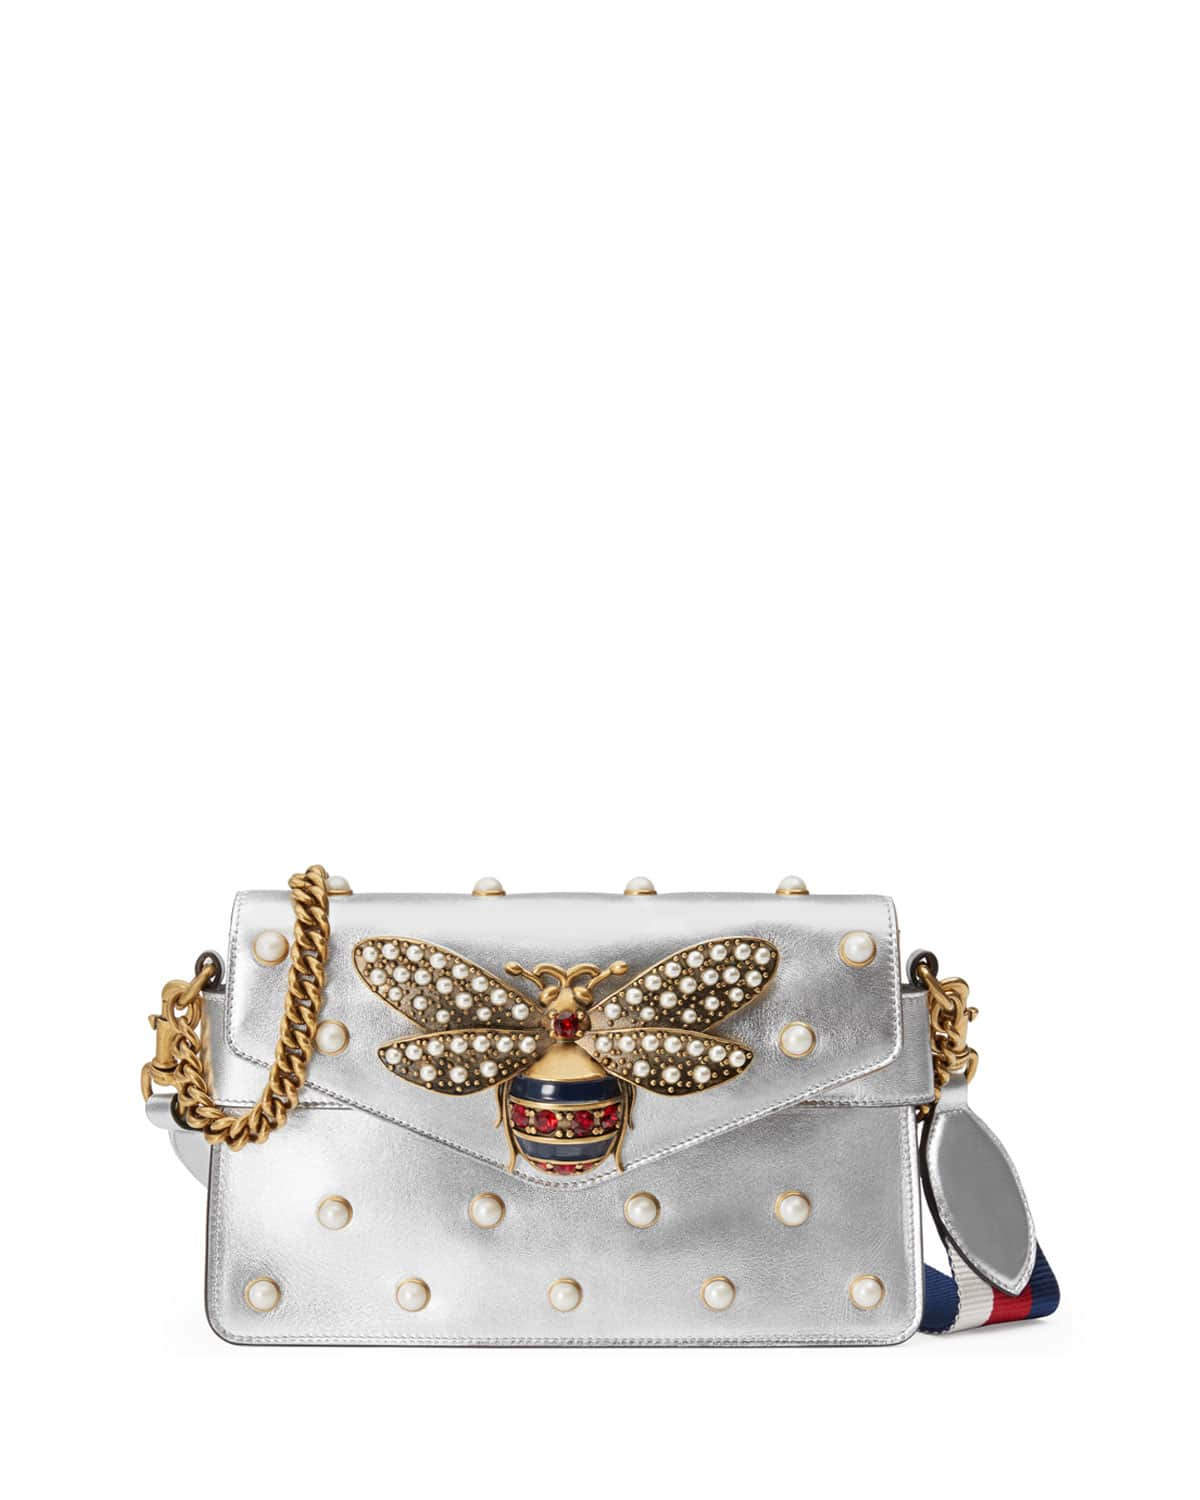 Gucci Resort 2017 Bag Collection – Spotted Fashion